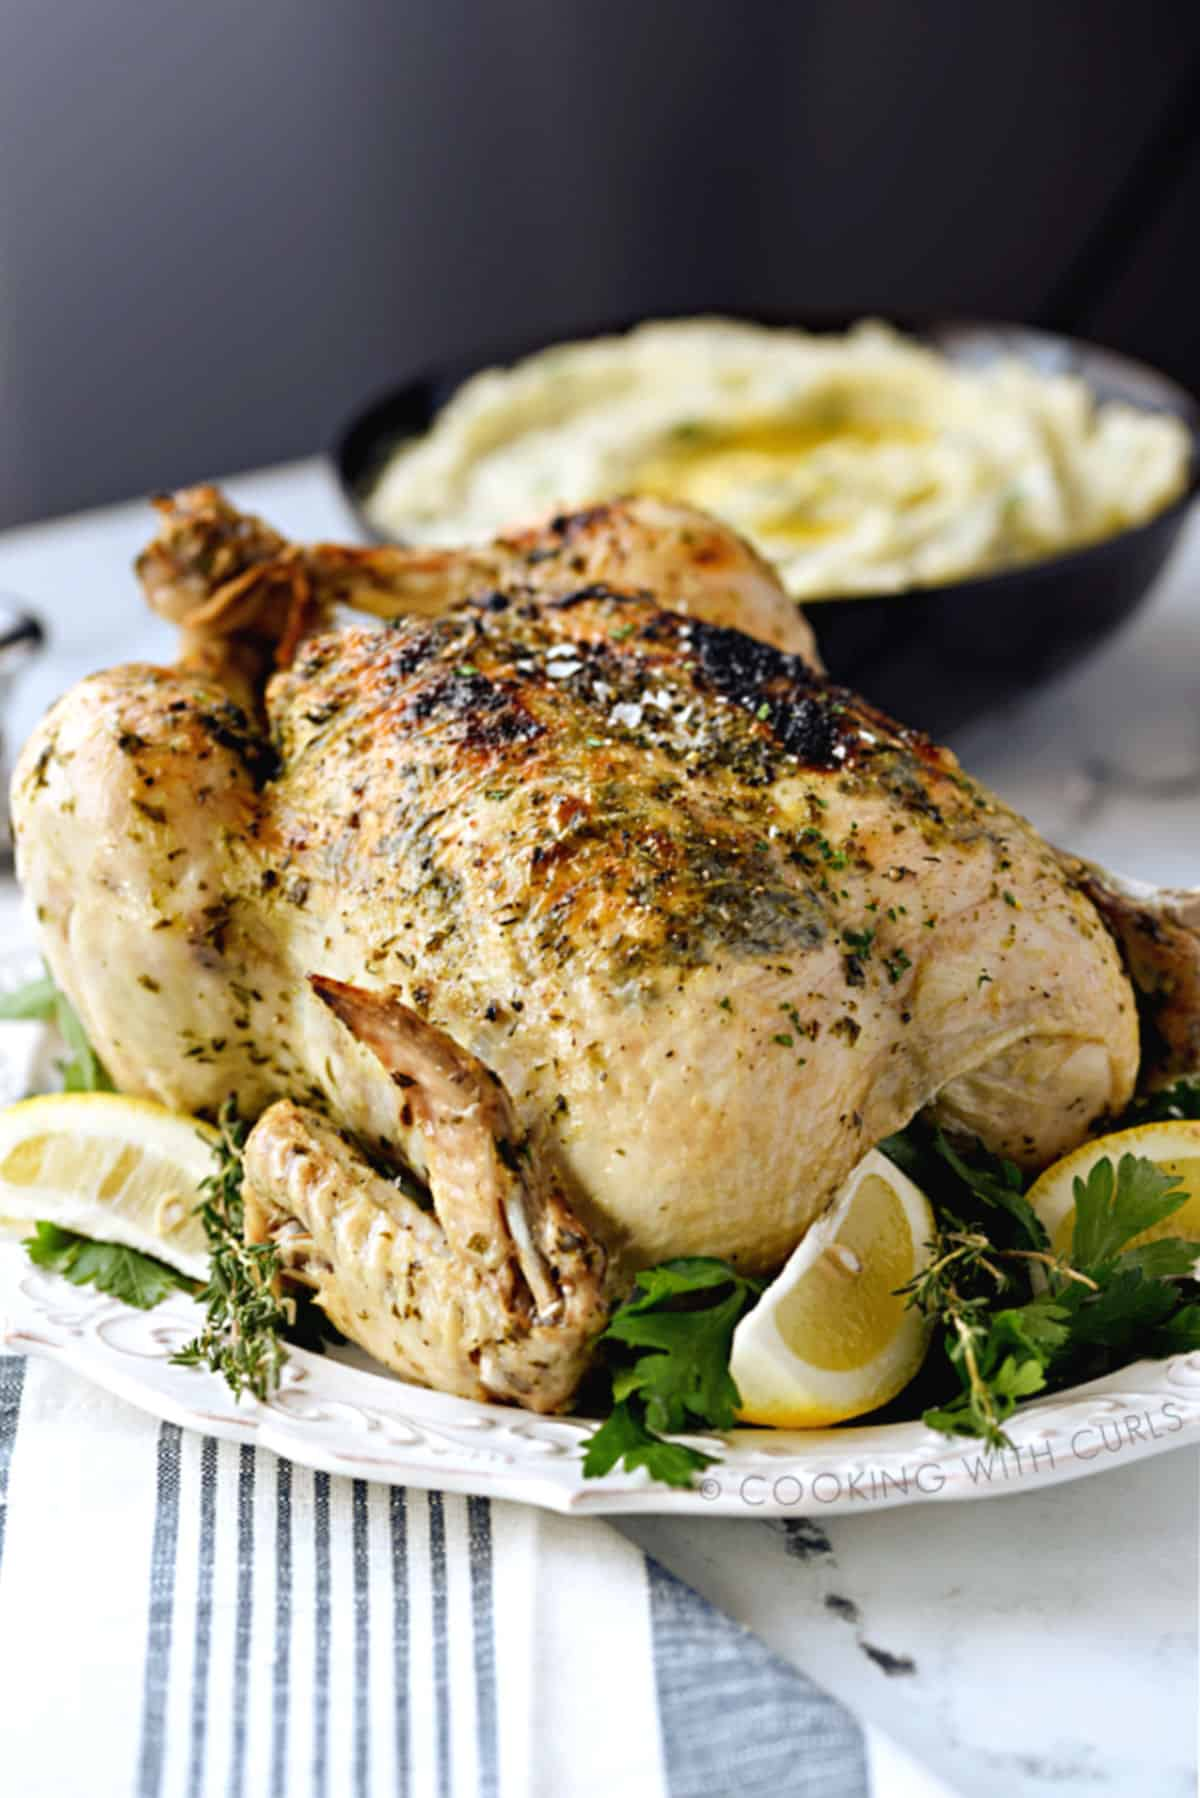 A whole Greek chicken on a white platter surrounded by fresh herbs and lemon wedges with a bowl of mashed potatoes in the background.